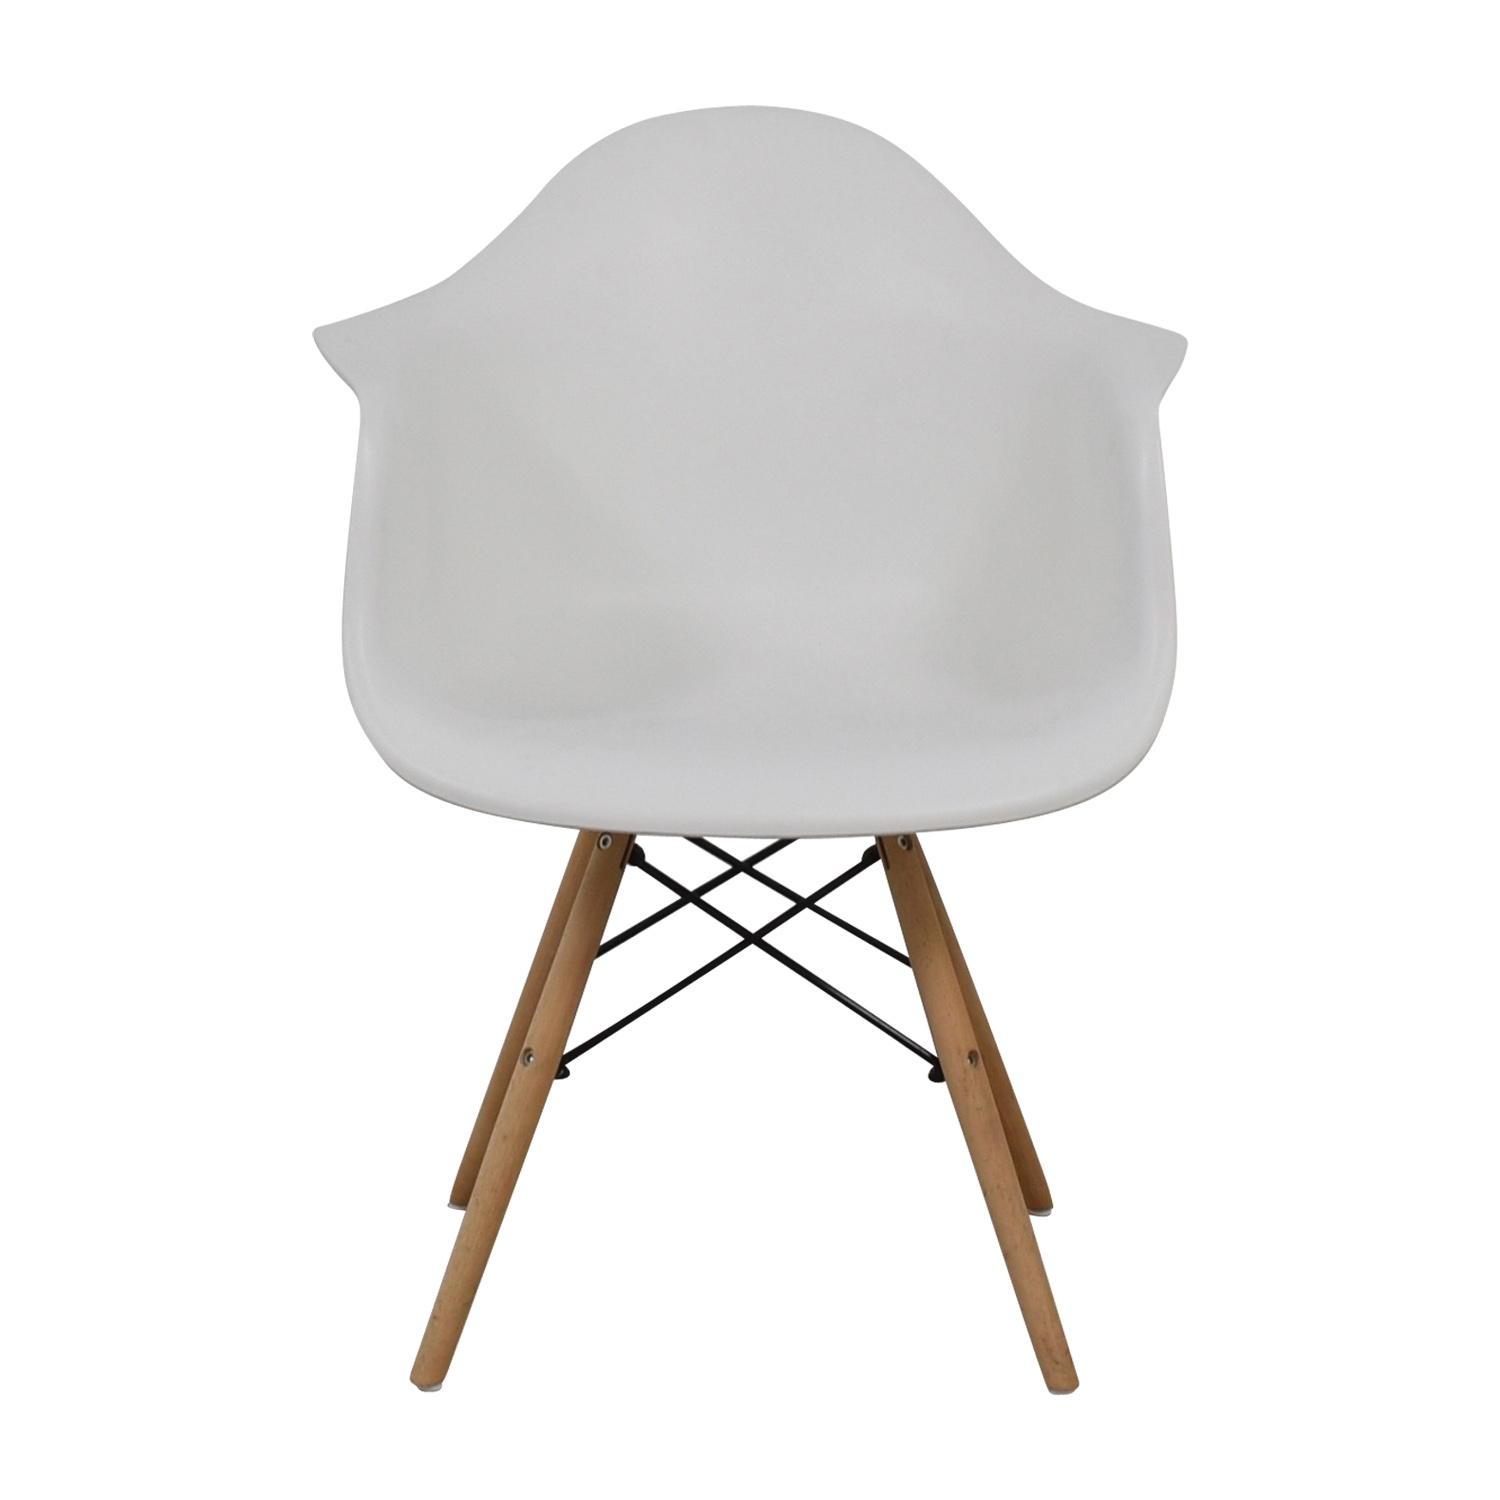 Giantex Giantex Mid Century White Molded Plastic Dining Chair with Wood Legs for sale